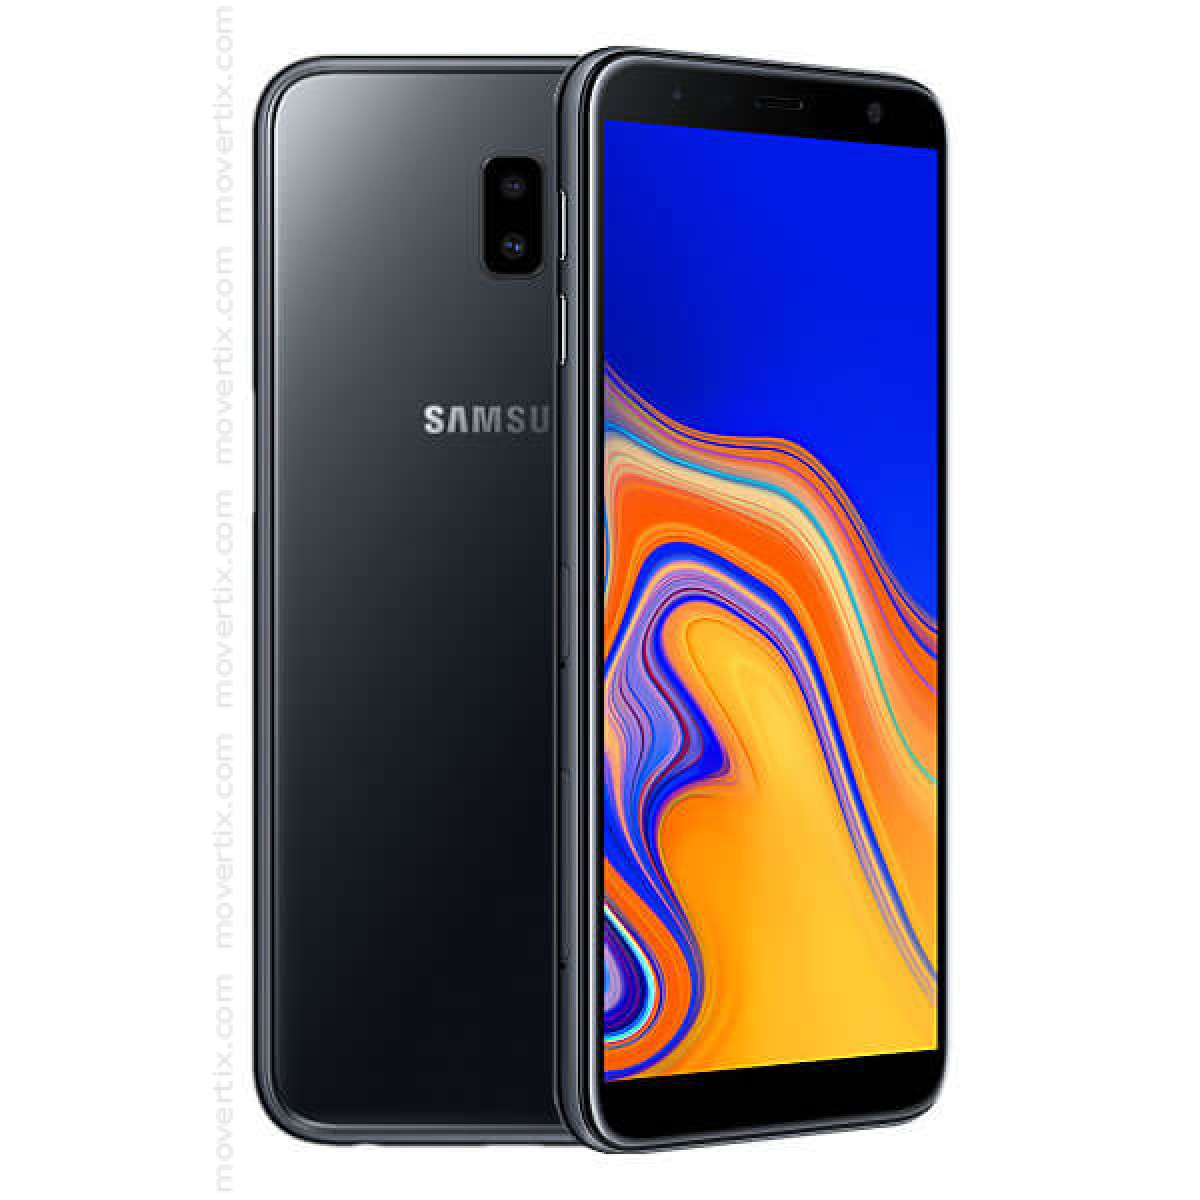 77a94cd4a The Samsung Galaxy J6 Plus (2018) in black color is a Dual SIM smartphone  with a 6-inch screen